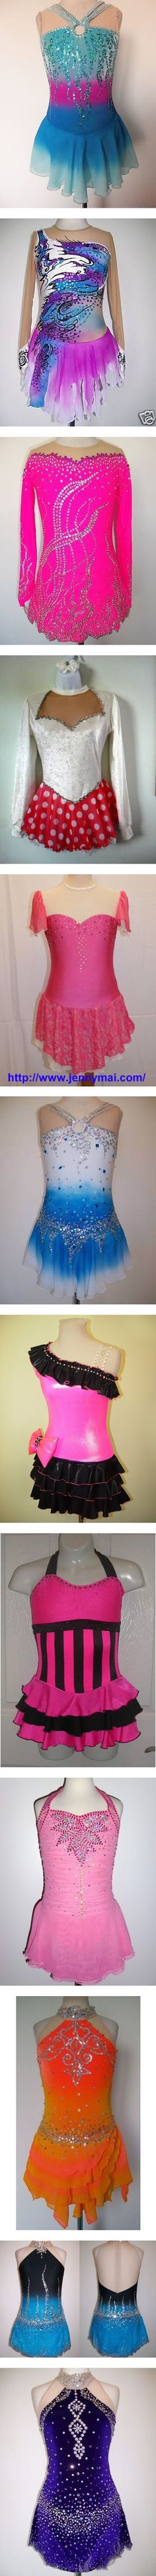 """""""Skating dresses WMLEBP (FanFic)"""" by chelseacov-xx ❤ liked on Polyvore"""